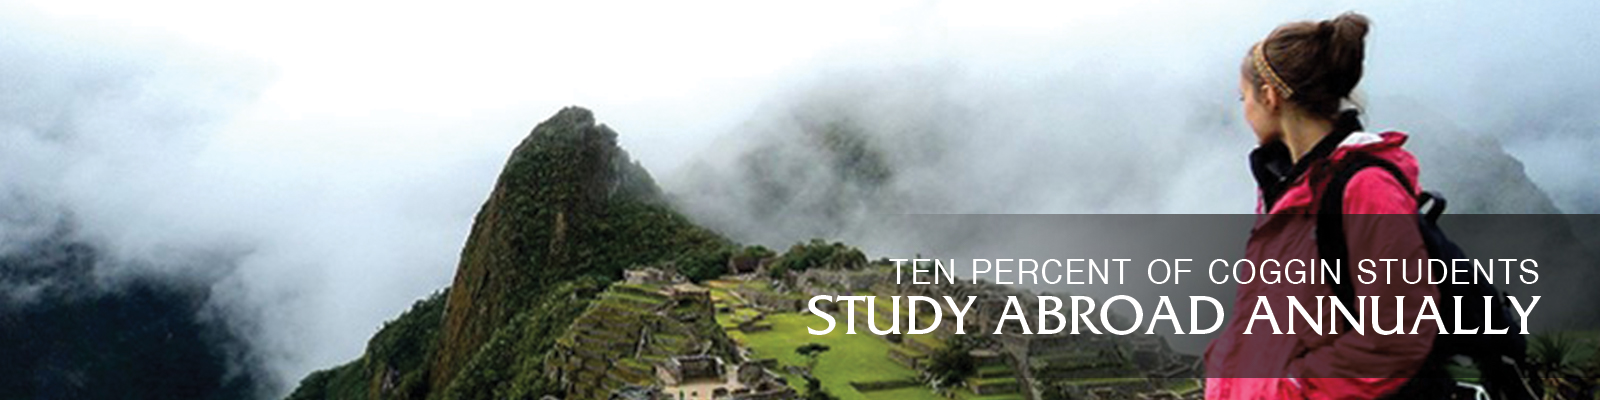 ten percent of coggin students study abroad annually - girl looking at a mountain